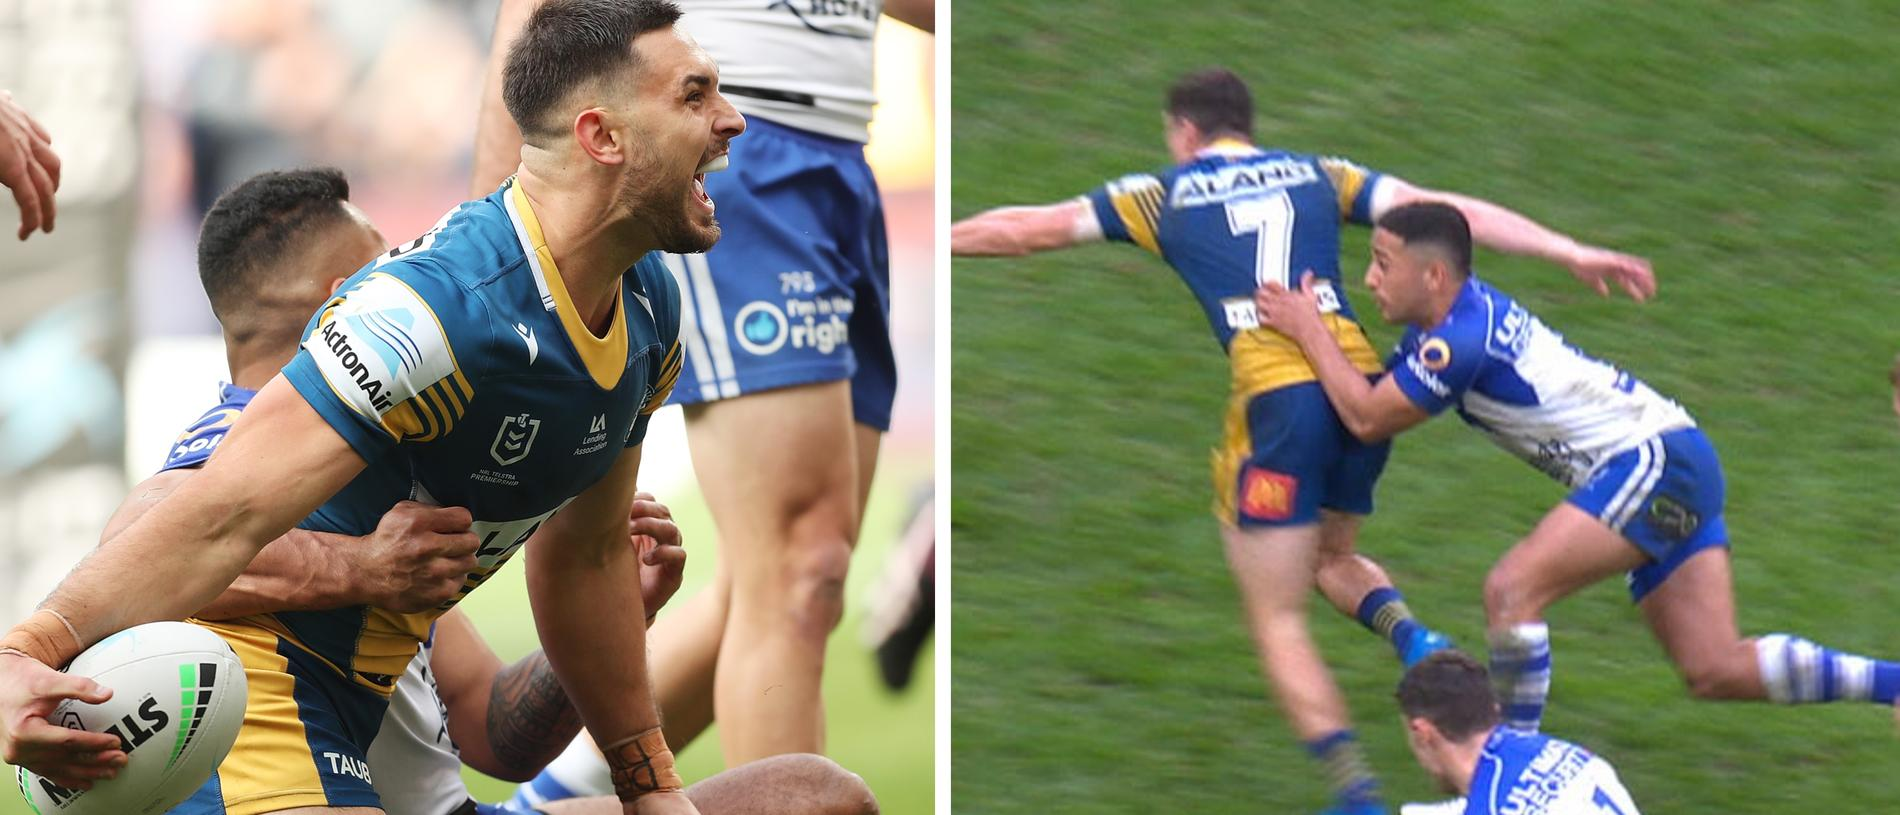 The Eels ran away with the game after a couple of dumb Bulldogs plays.